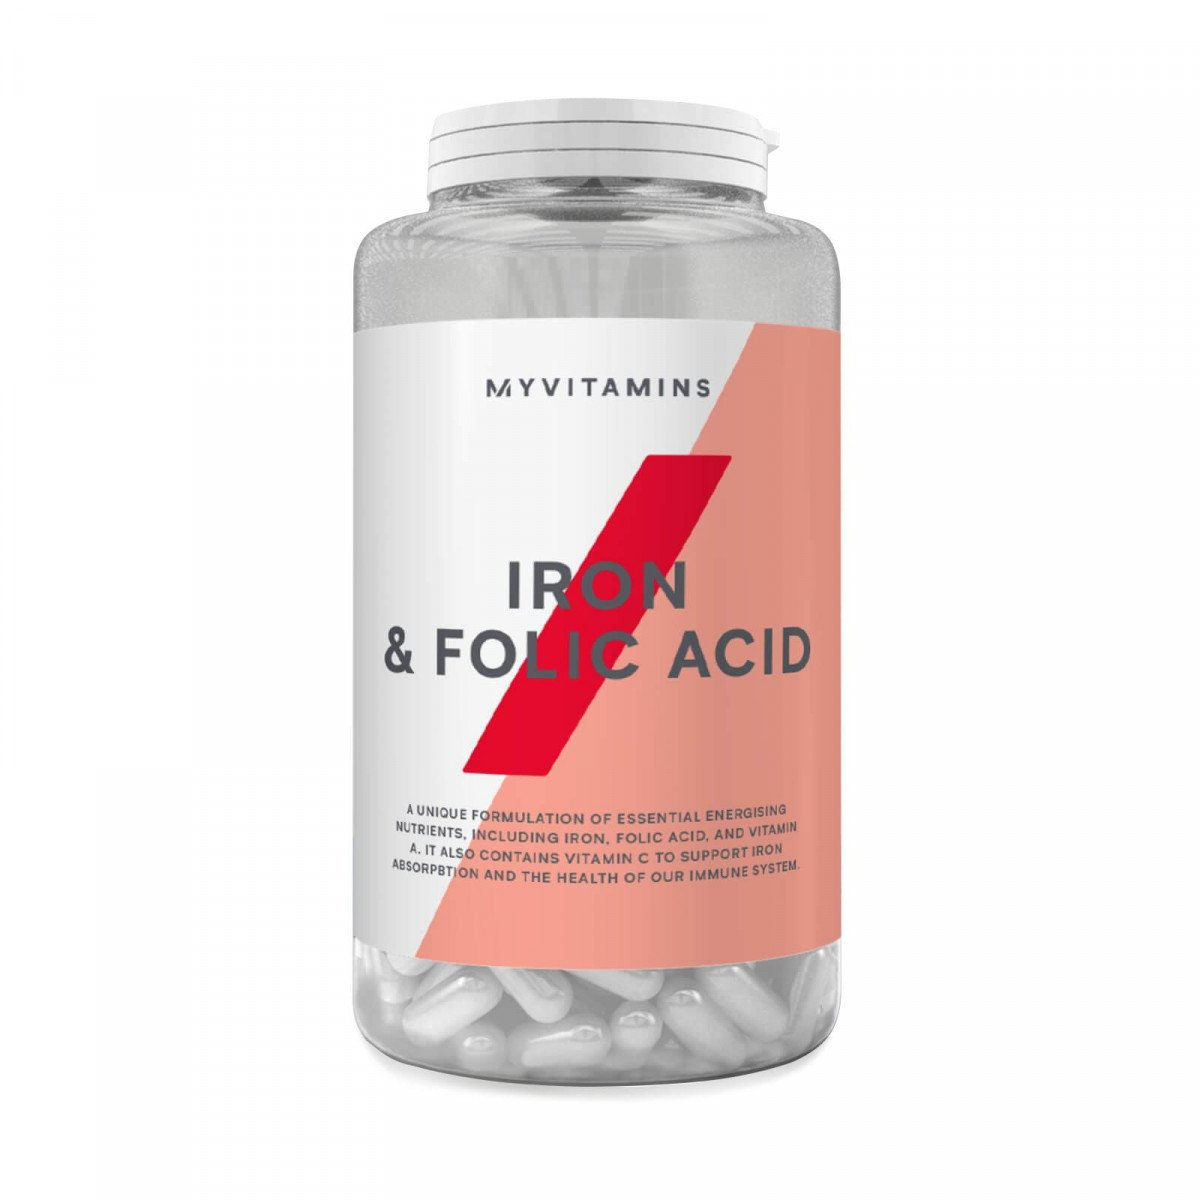 Iron & Folic Acid